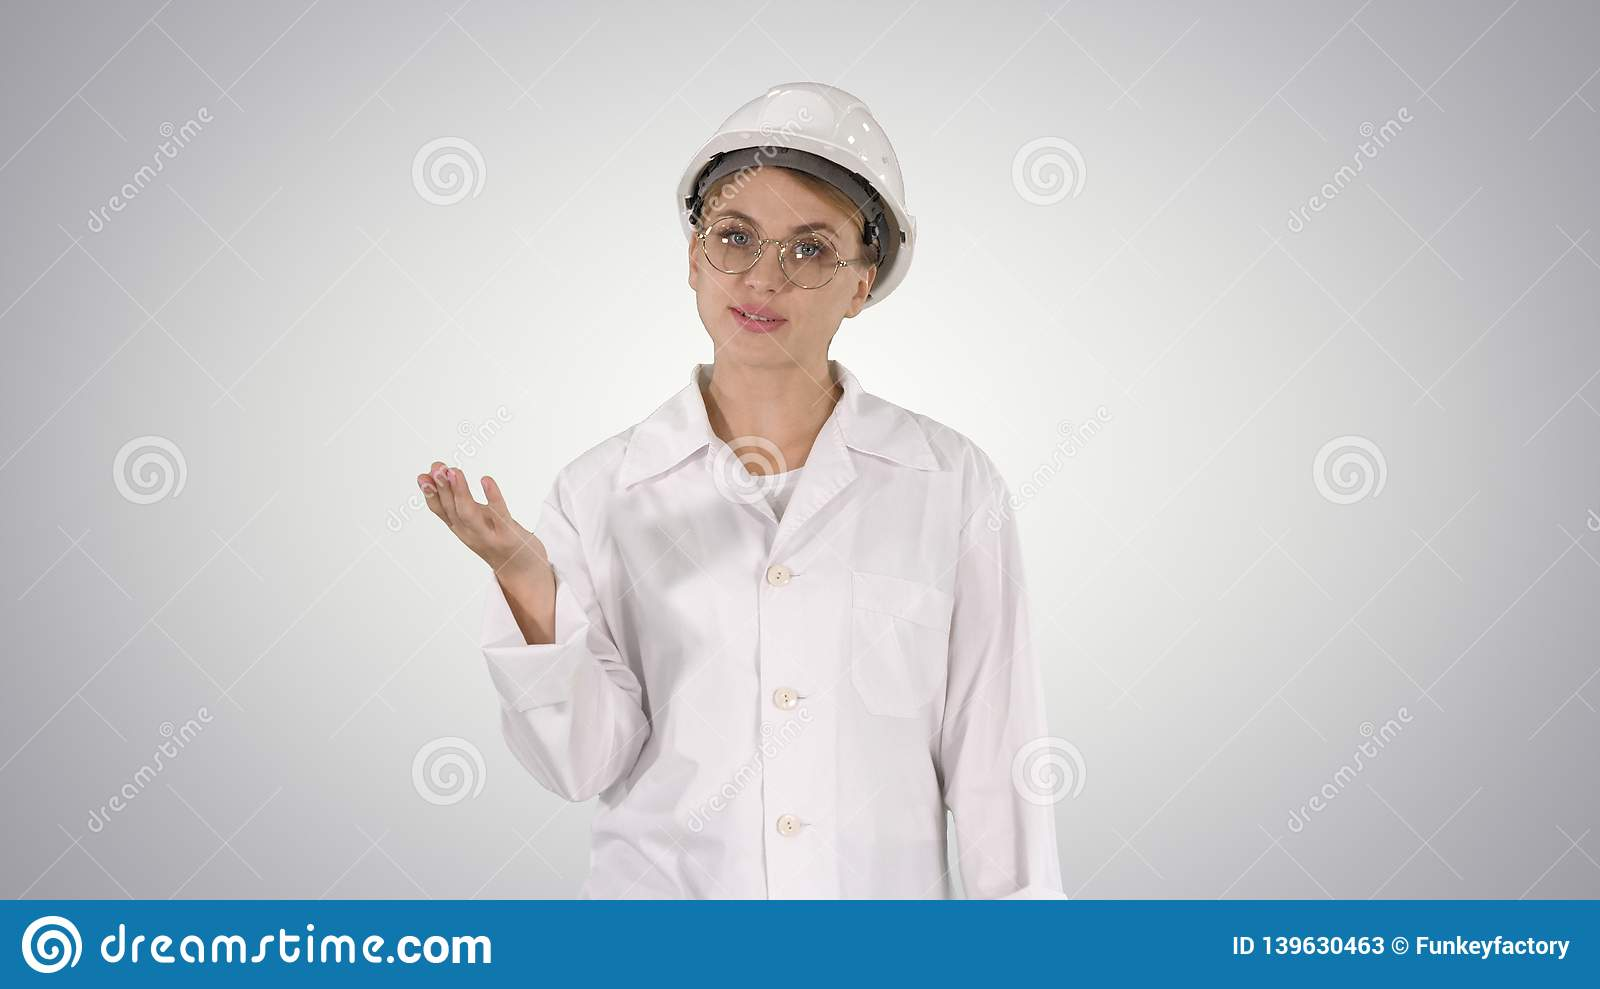 Mature engineer woman in hard hat and lab coat talking and presenting something pointing to sides on gradient background